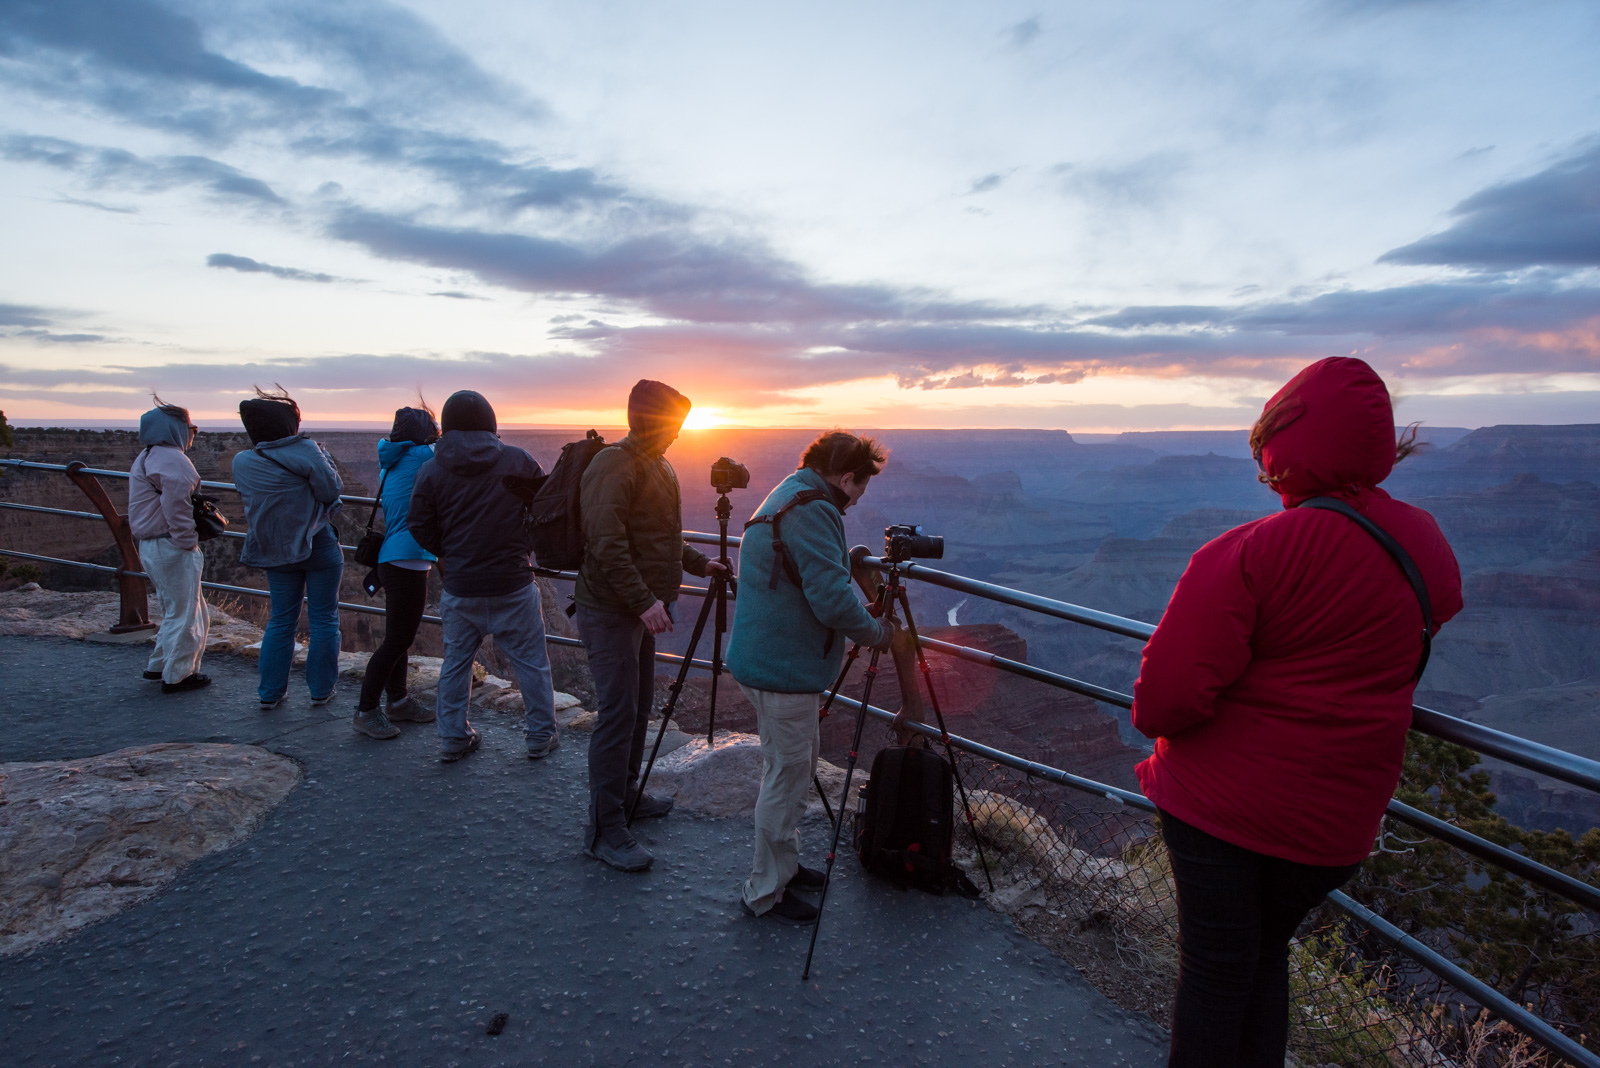 Sun flare & photographers, toughing it out for sunset